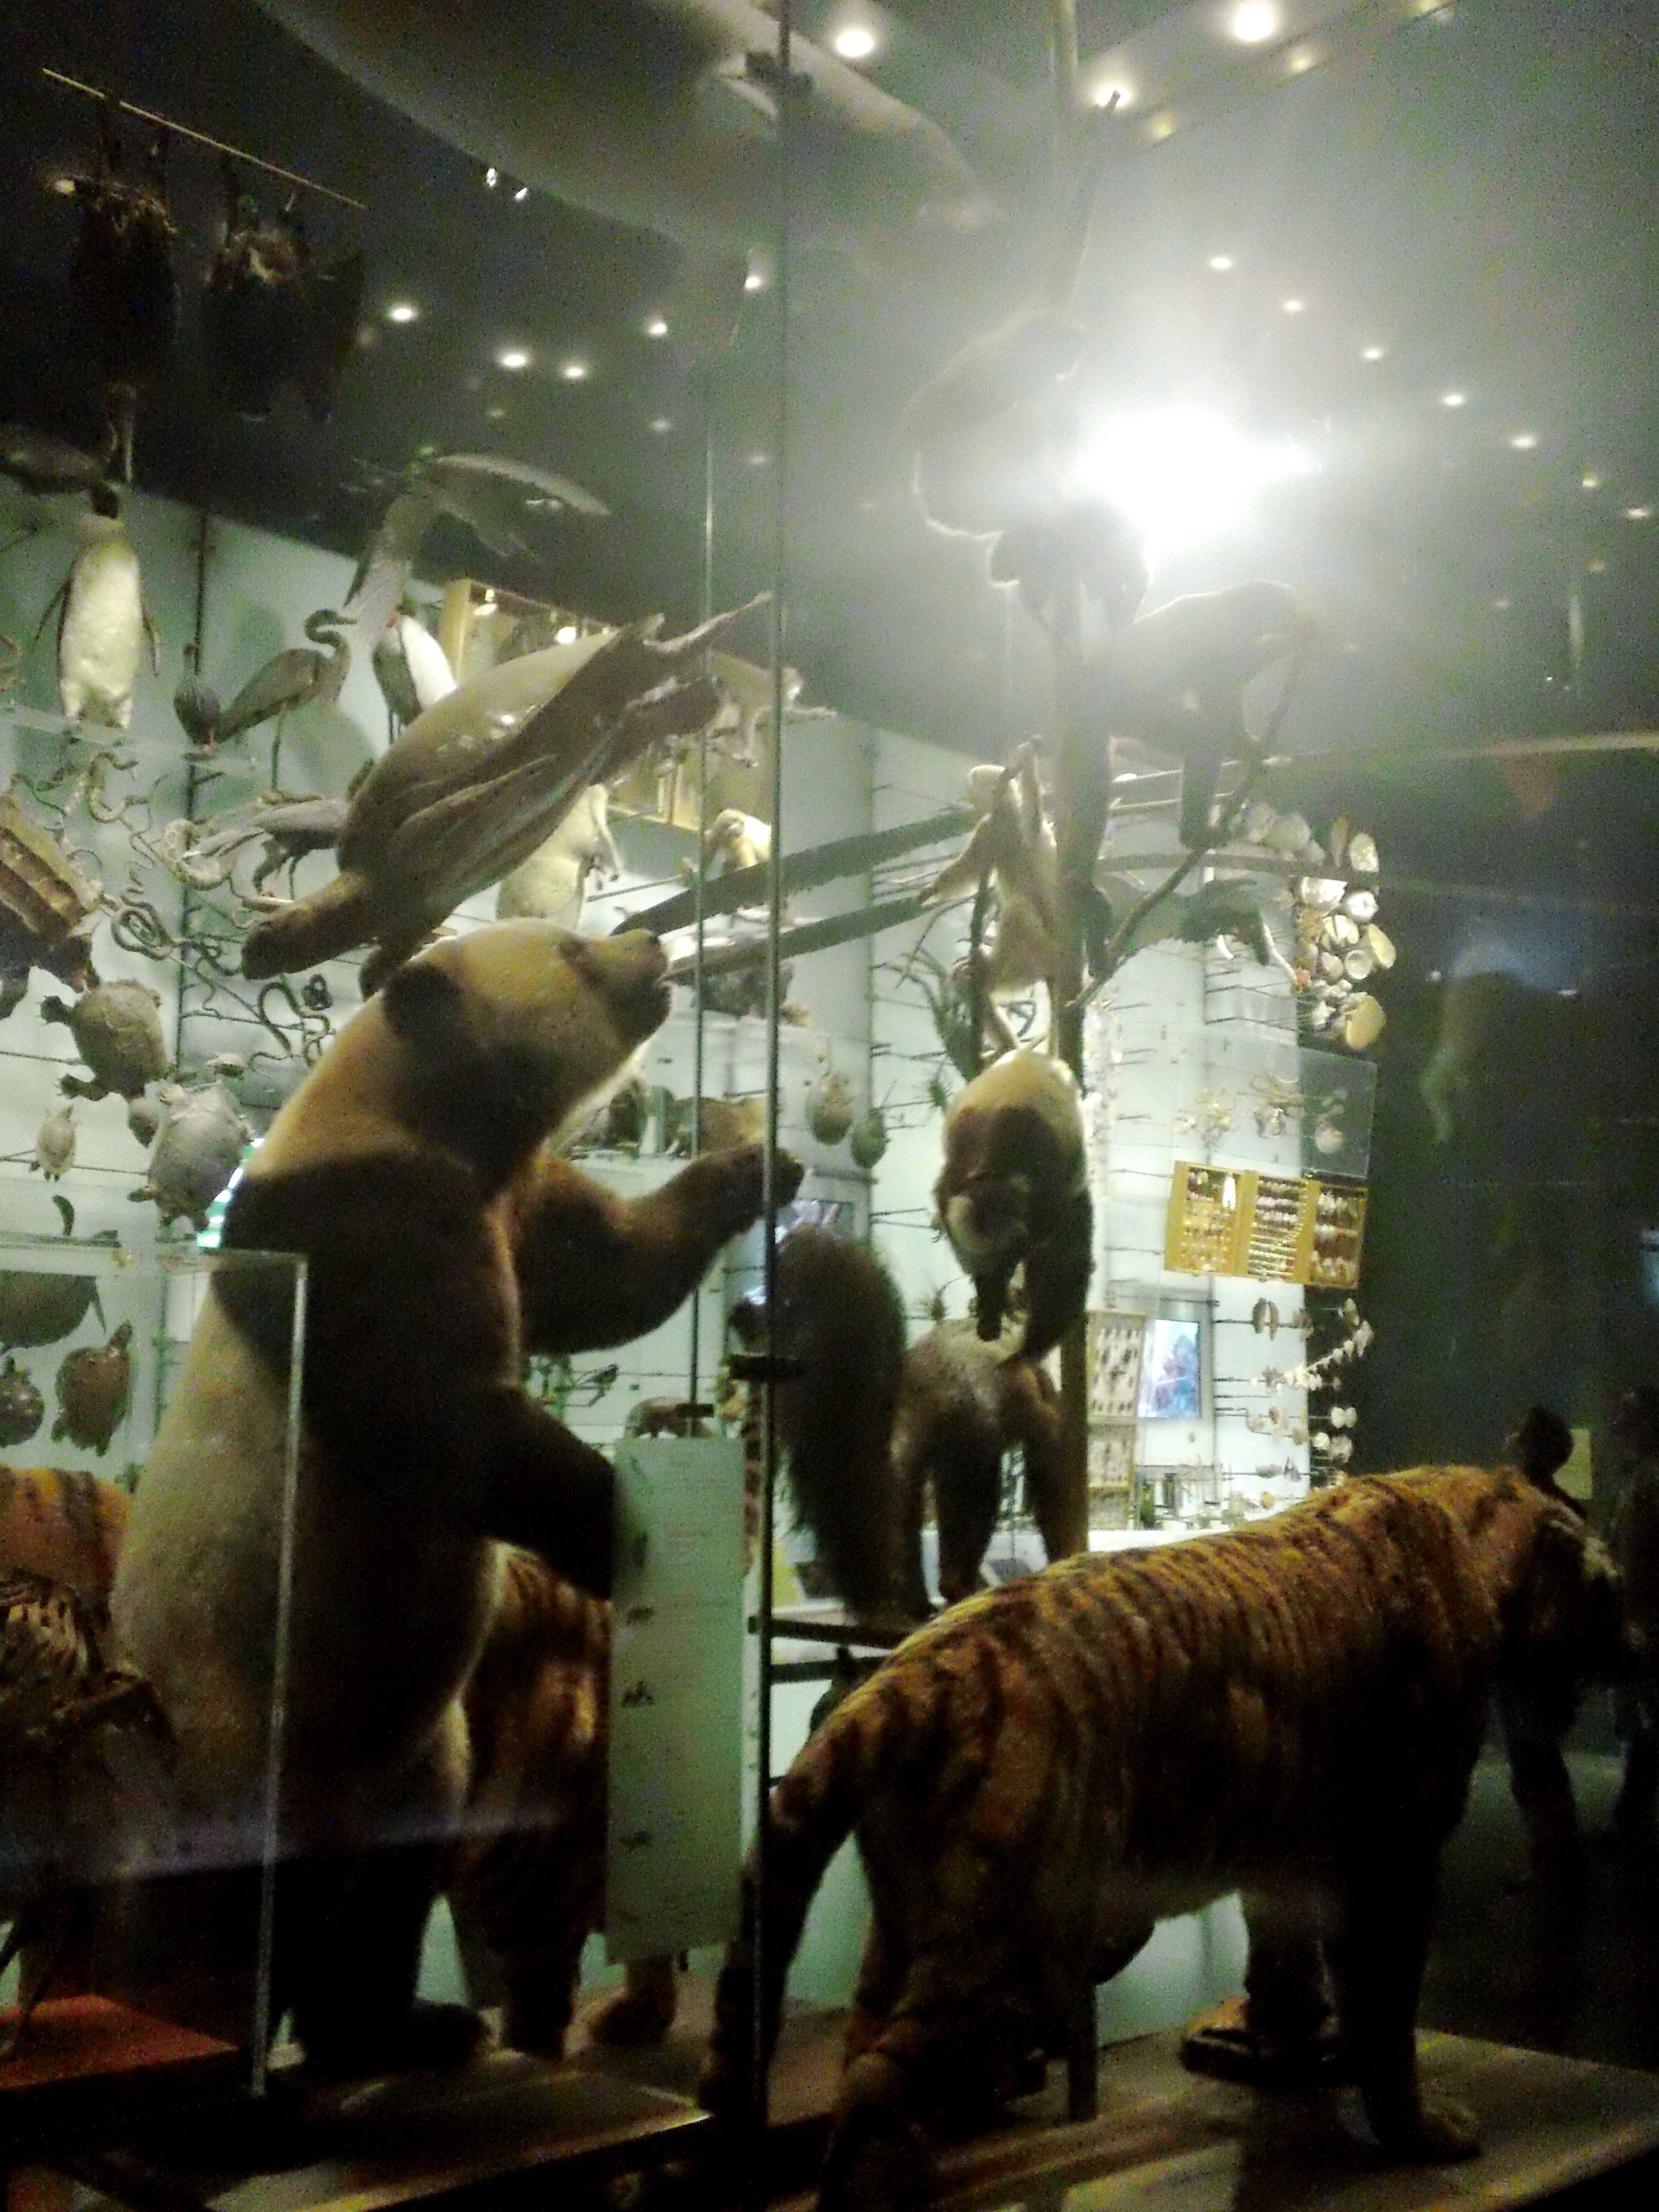 Animal Battle Royale - Atlas Obscura - Natural History Museum NYC